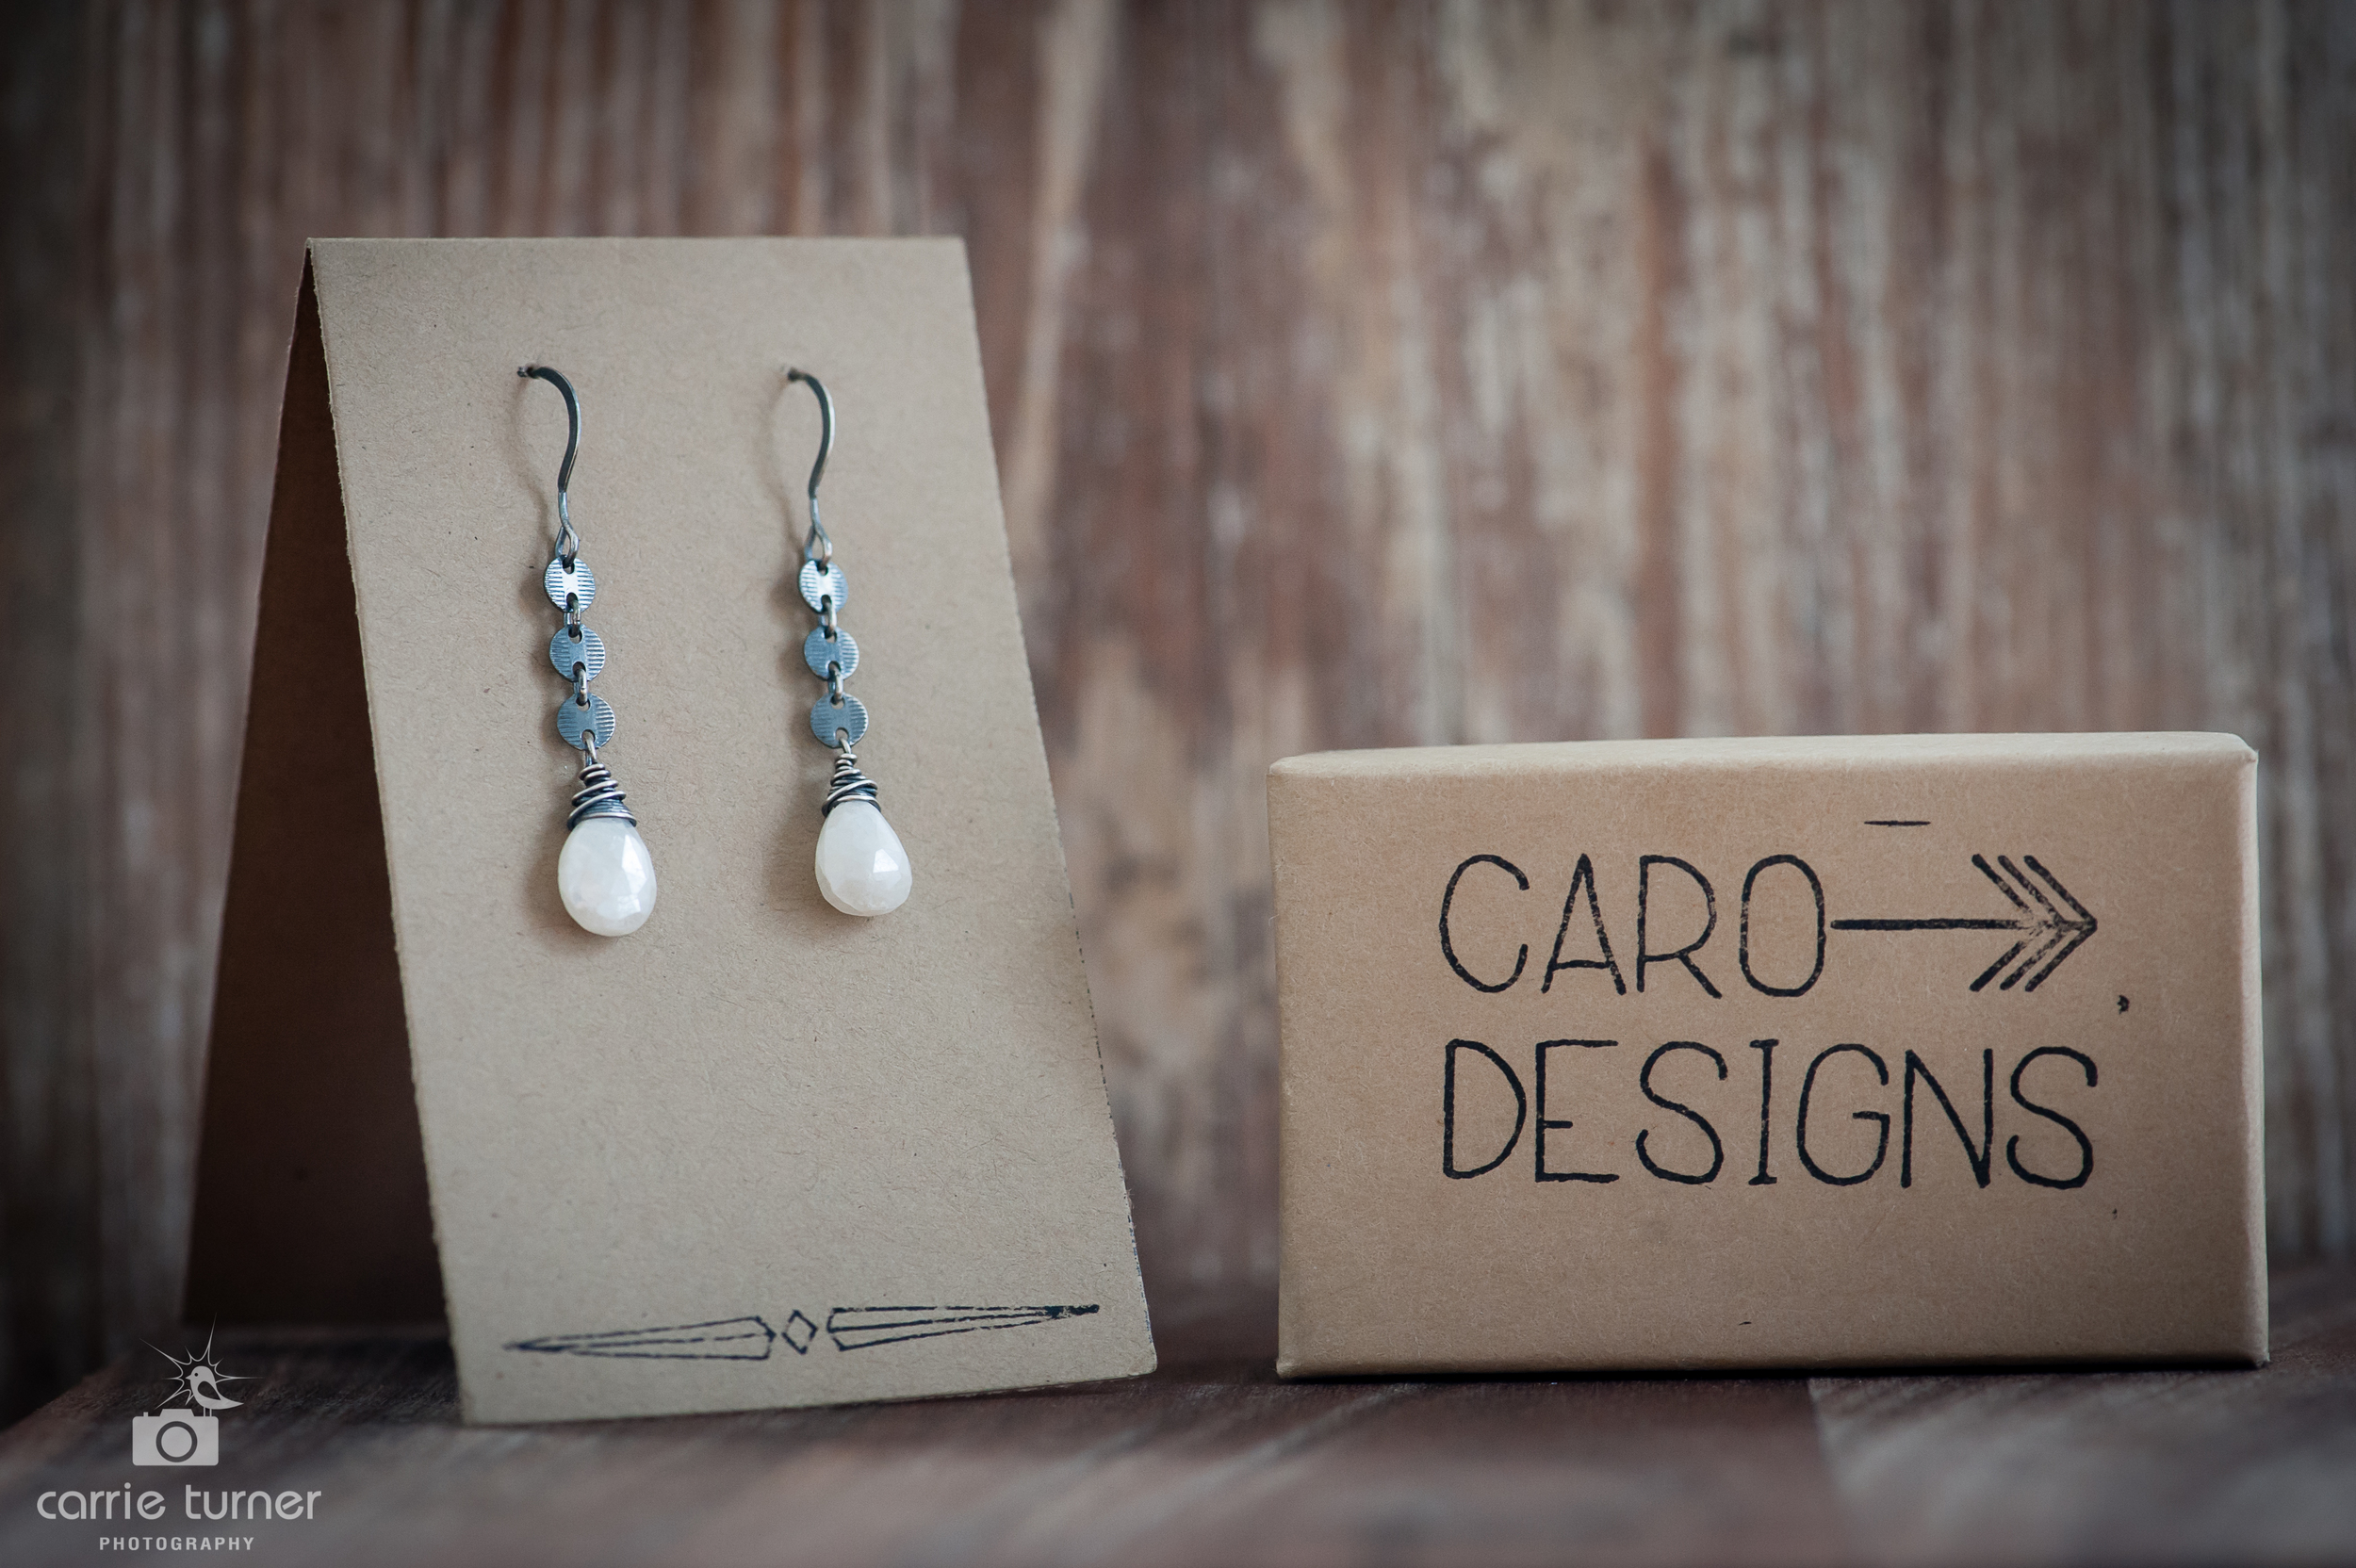 Beautiful White Sapphire Disc Chain earrings in Oxidized Sterling Silver from Caro Designs.